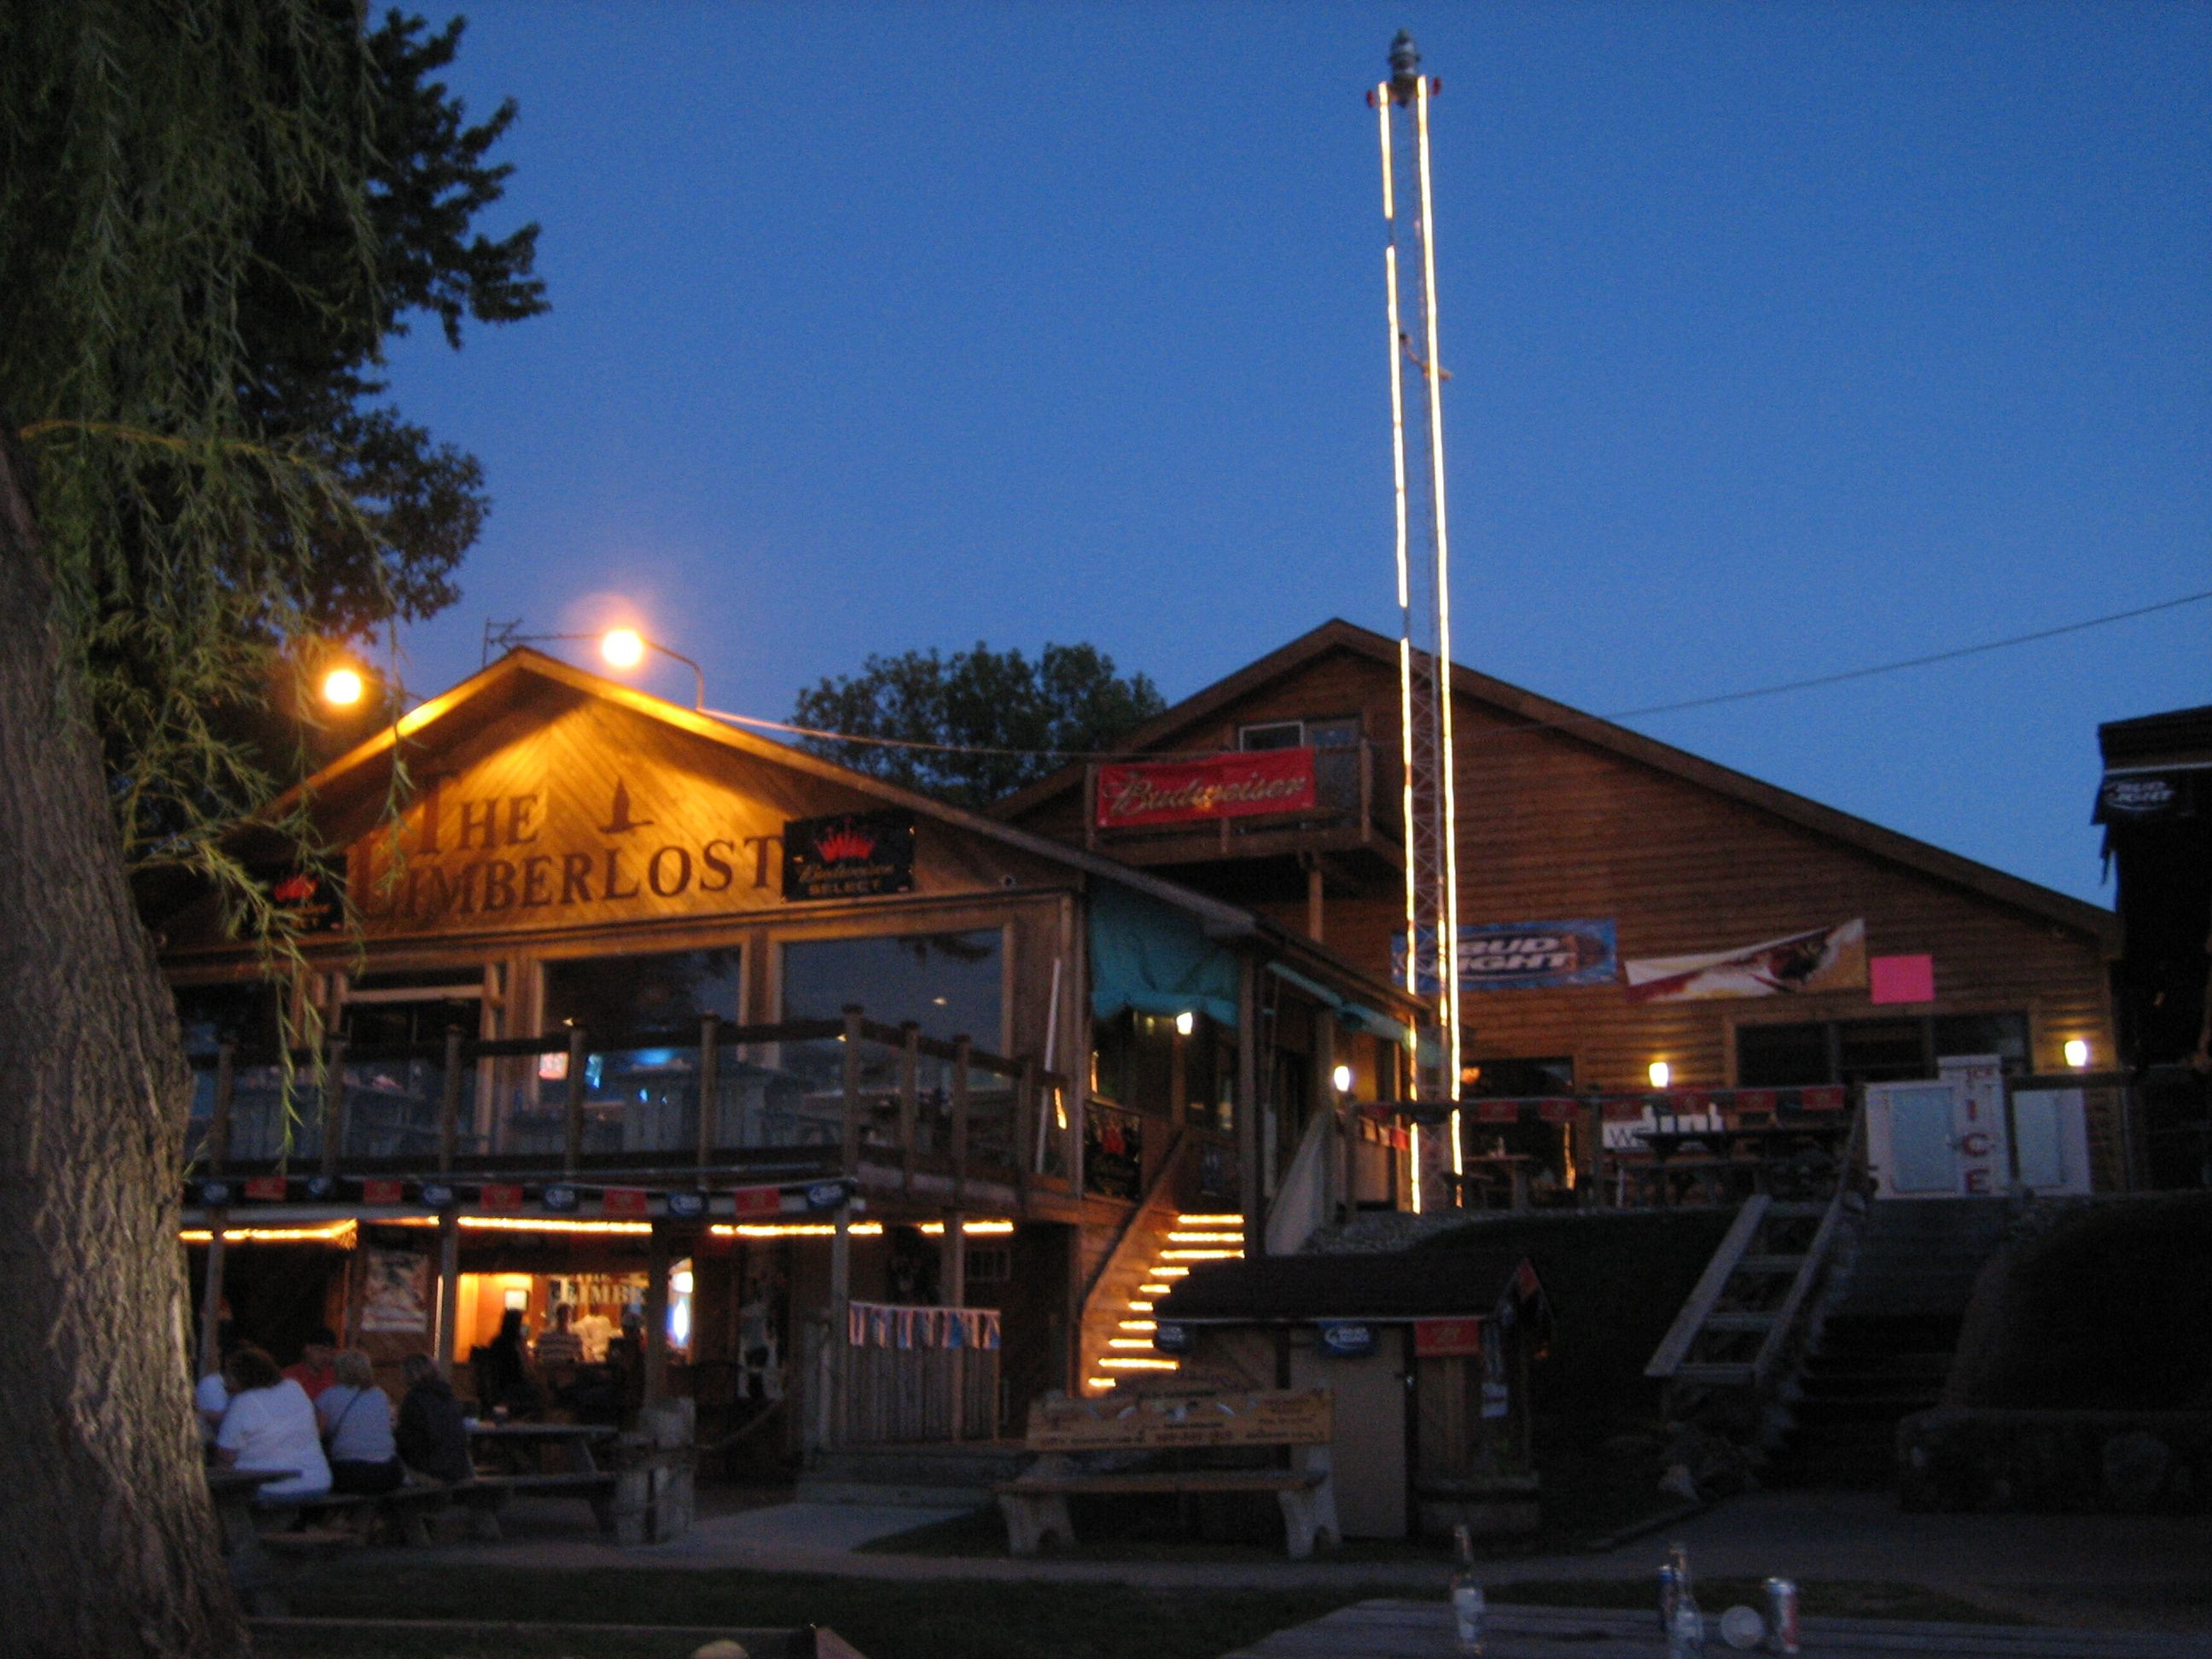 Our Favorite Restaurant Up In Houghton Lake, MI. Many Memories Going Up  North To The Cabin With My Dad U0026 Enjoying Houghton Lake!